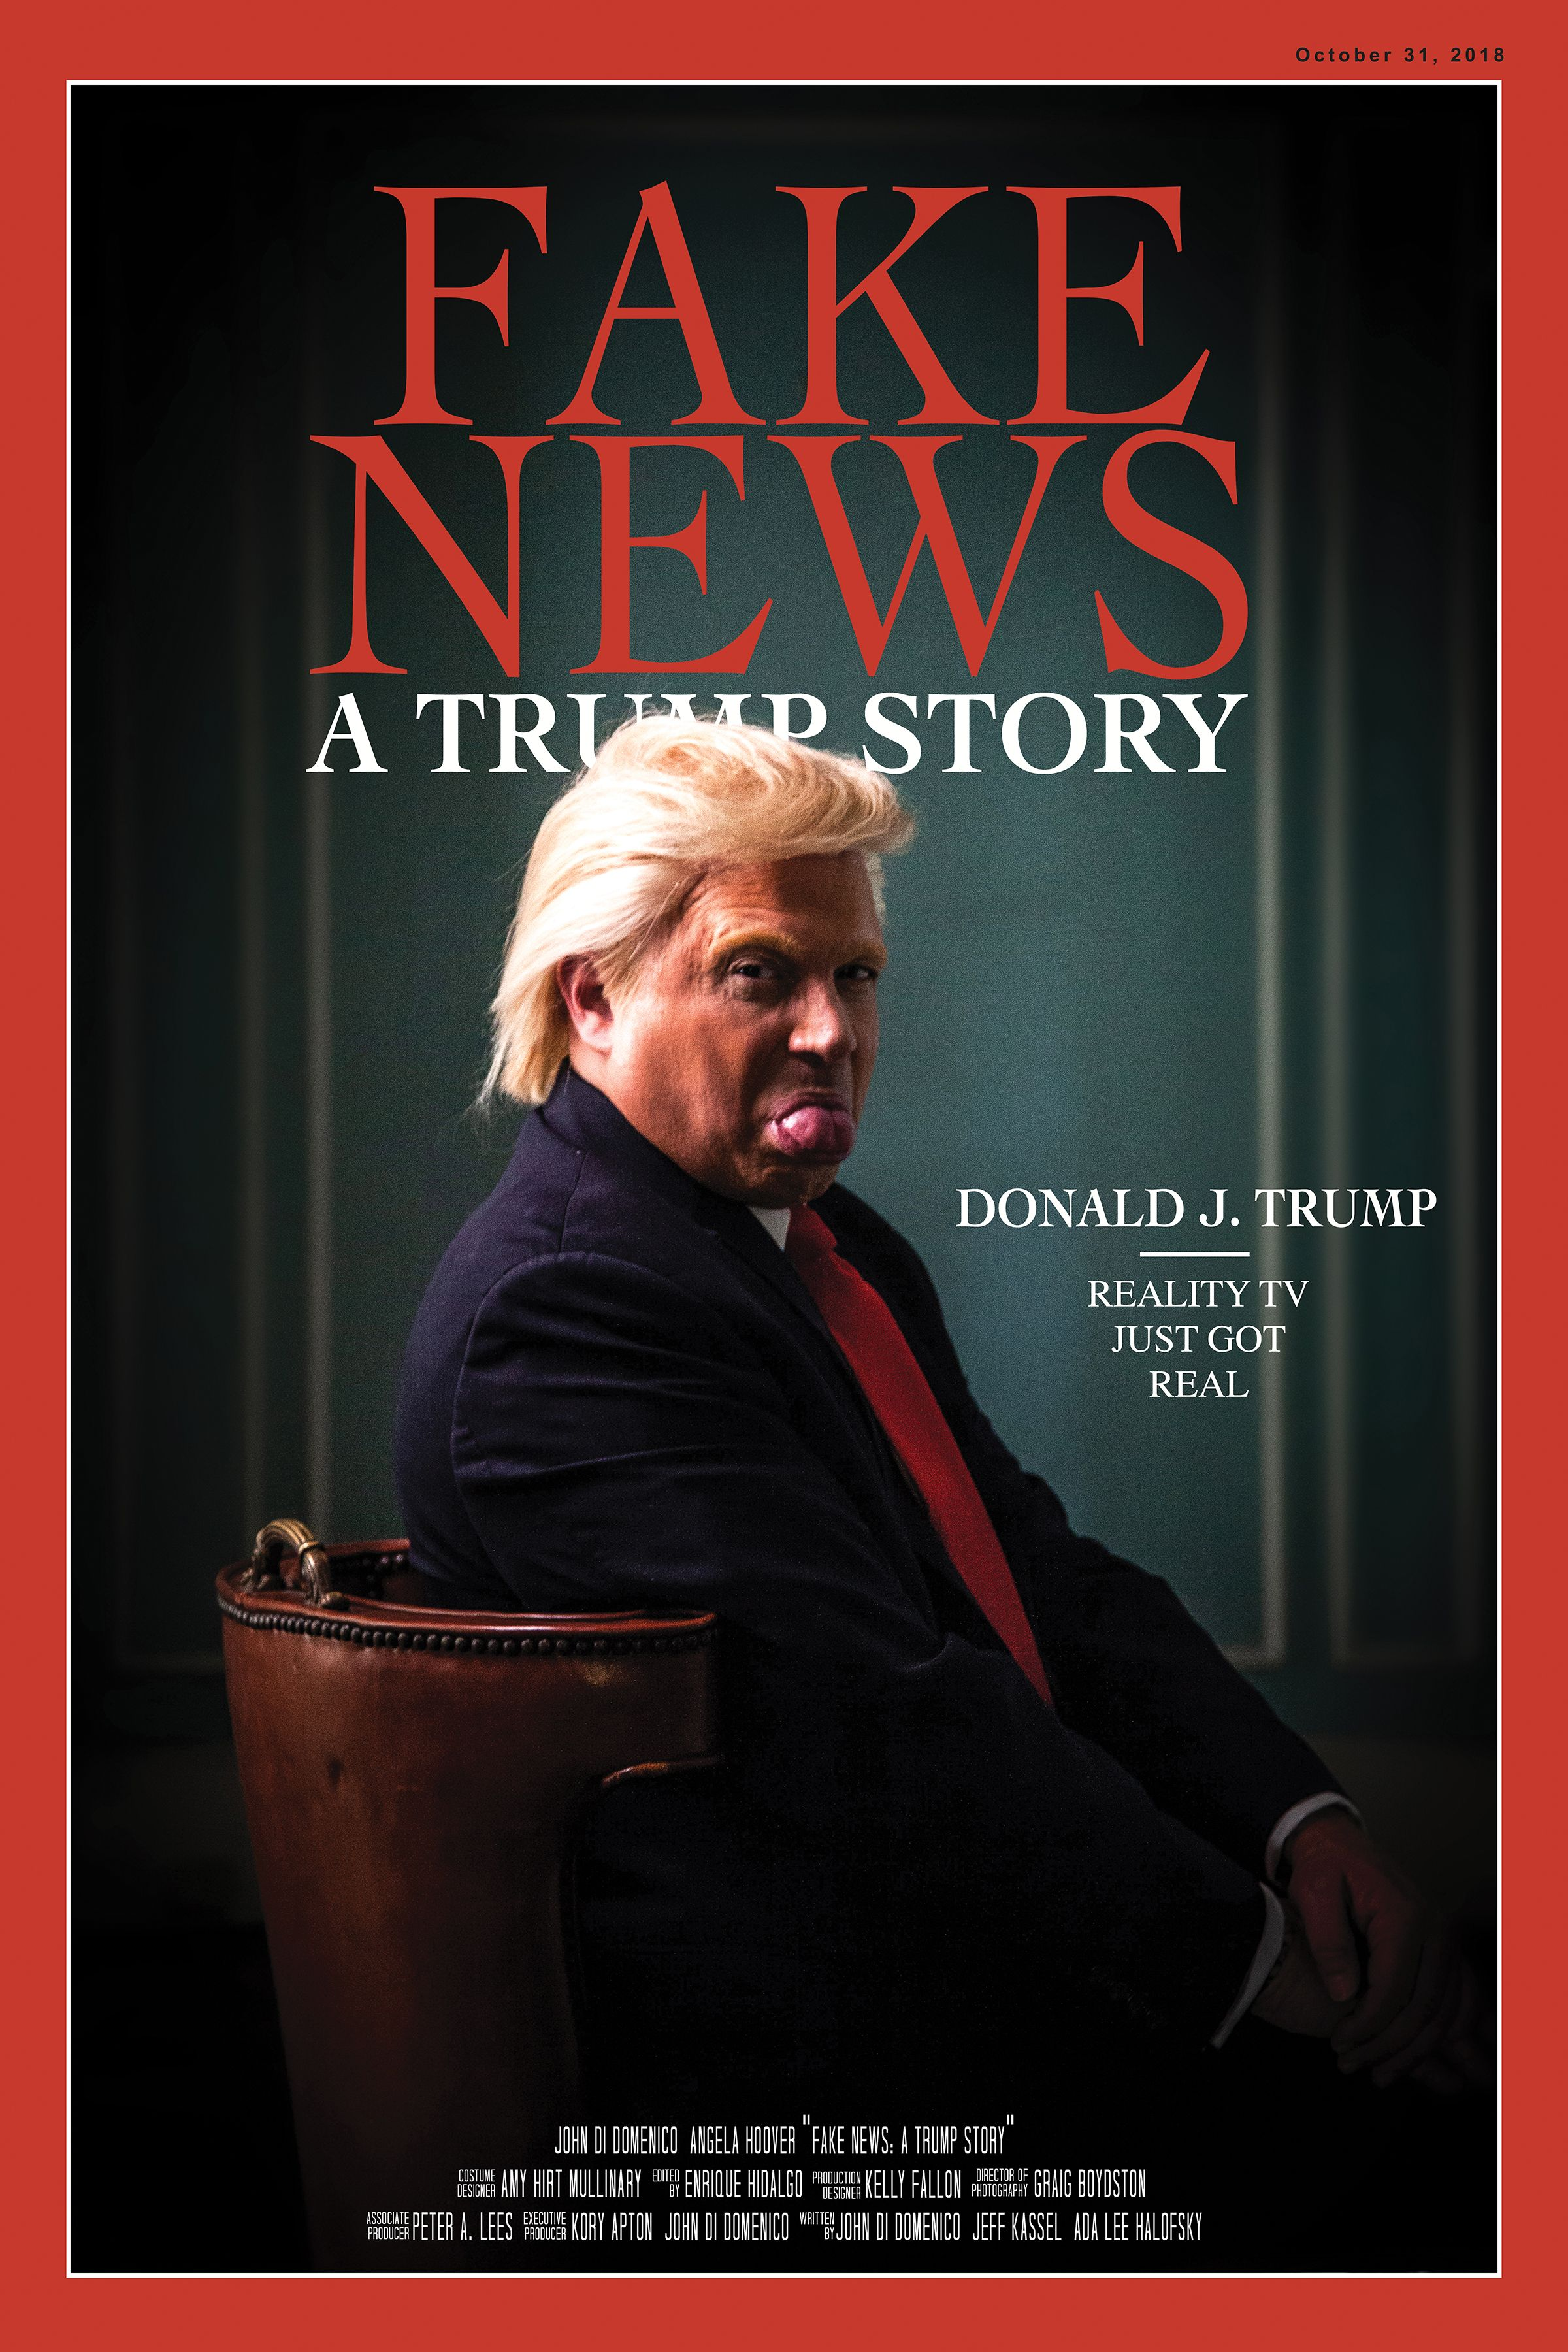 Fake News A Trump Story my Amazon Prime Comedy Show is now